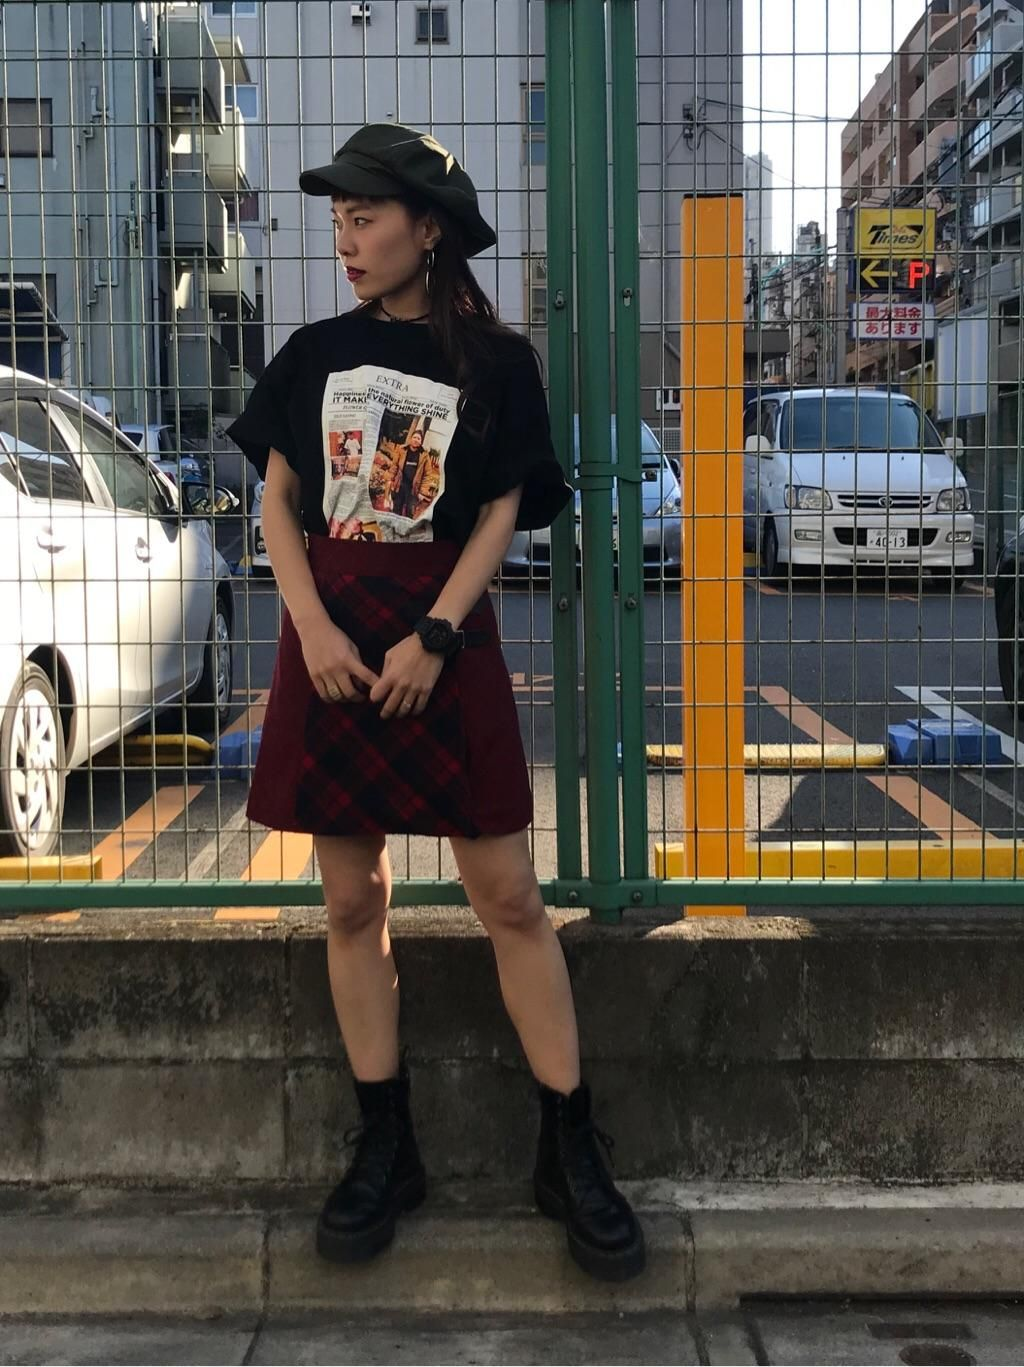 jouetie(ジュエティ) |YOUTH in LONDON NEWS PAPER TEE コーデ02